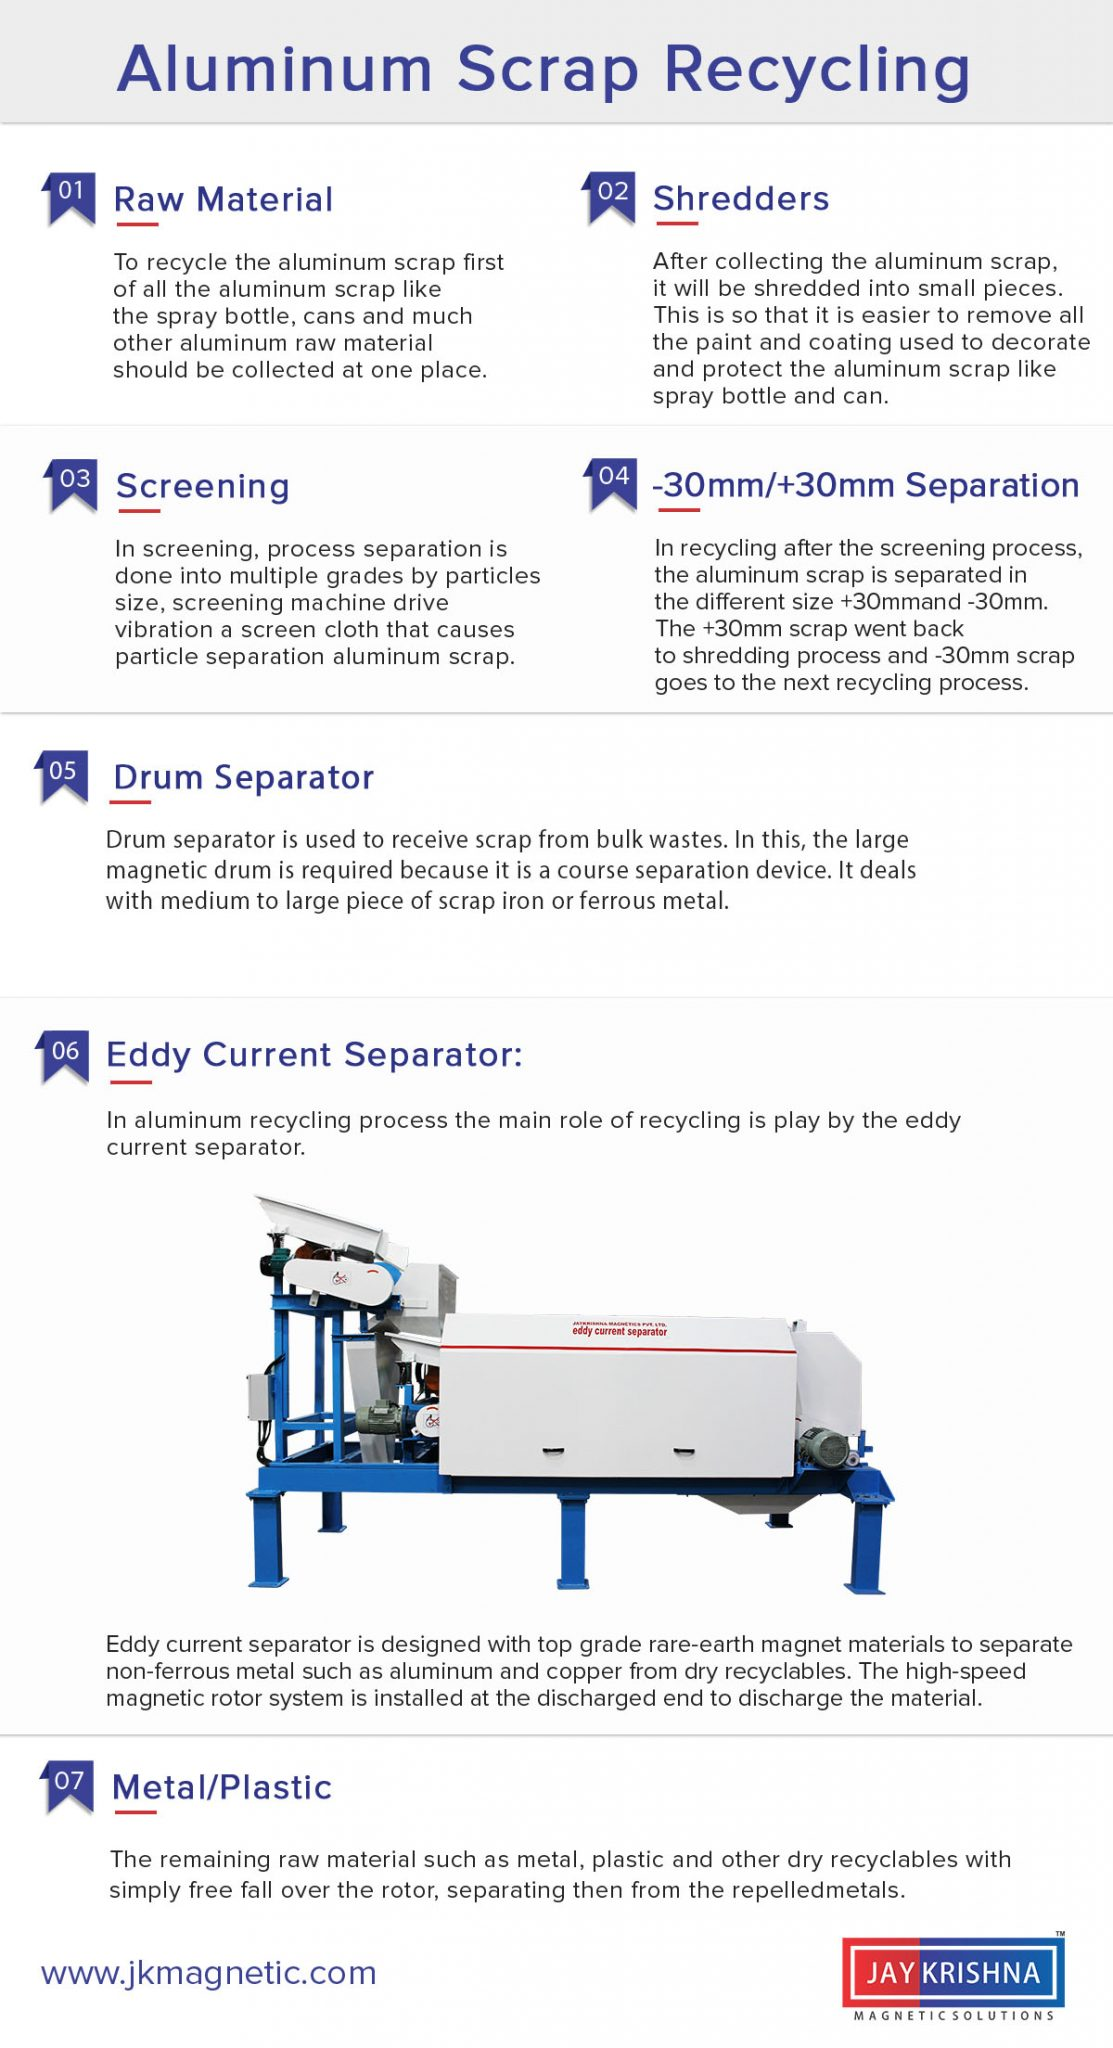 Infographic Complete Process Of Aluminum Scrap Recycling